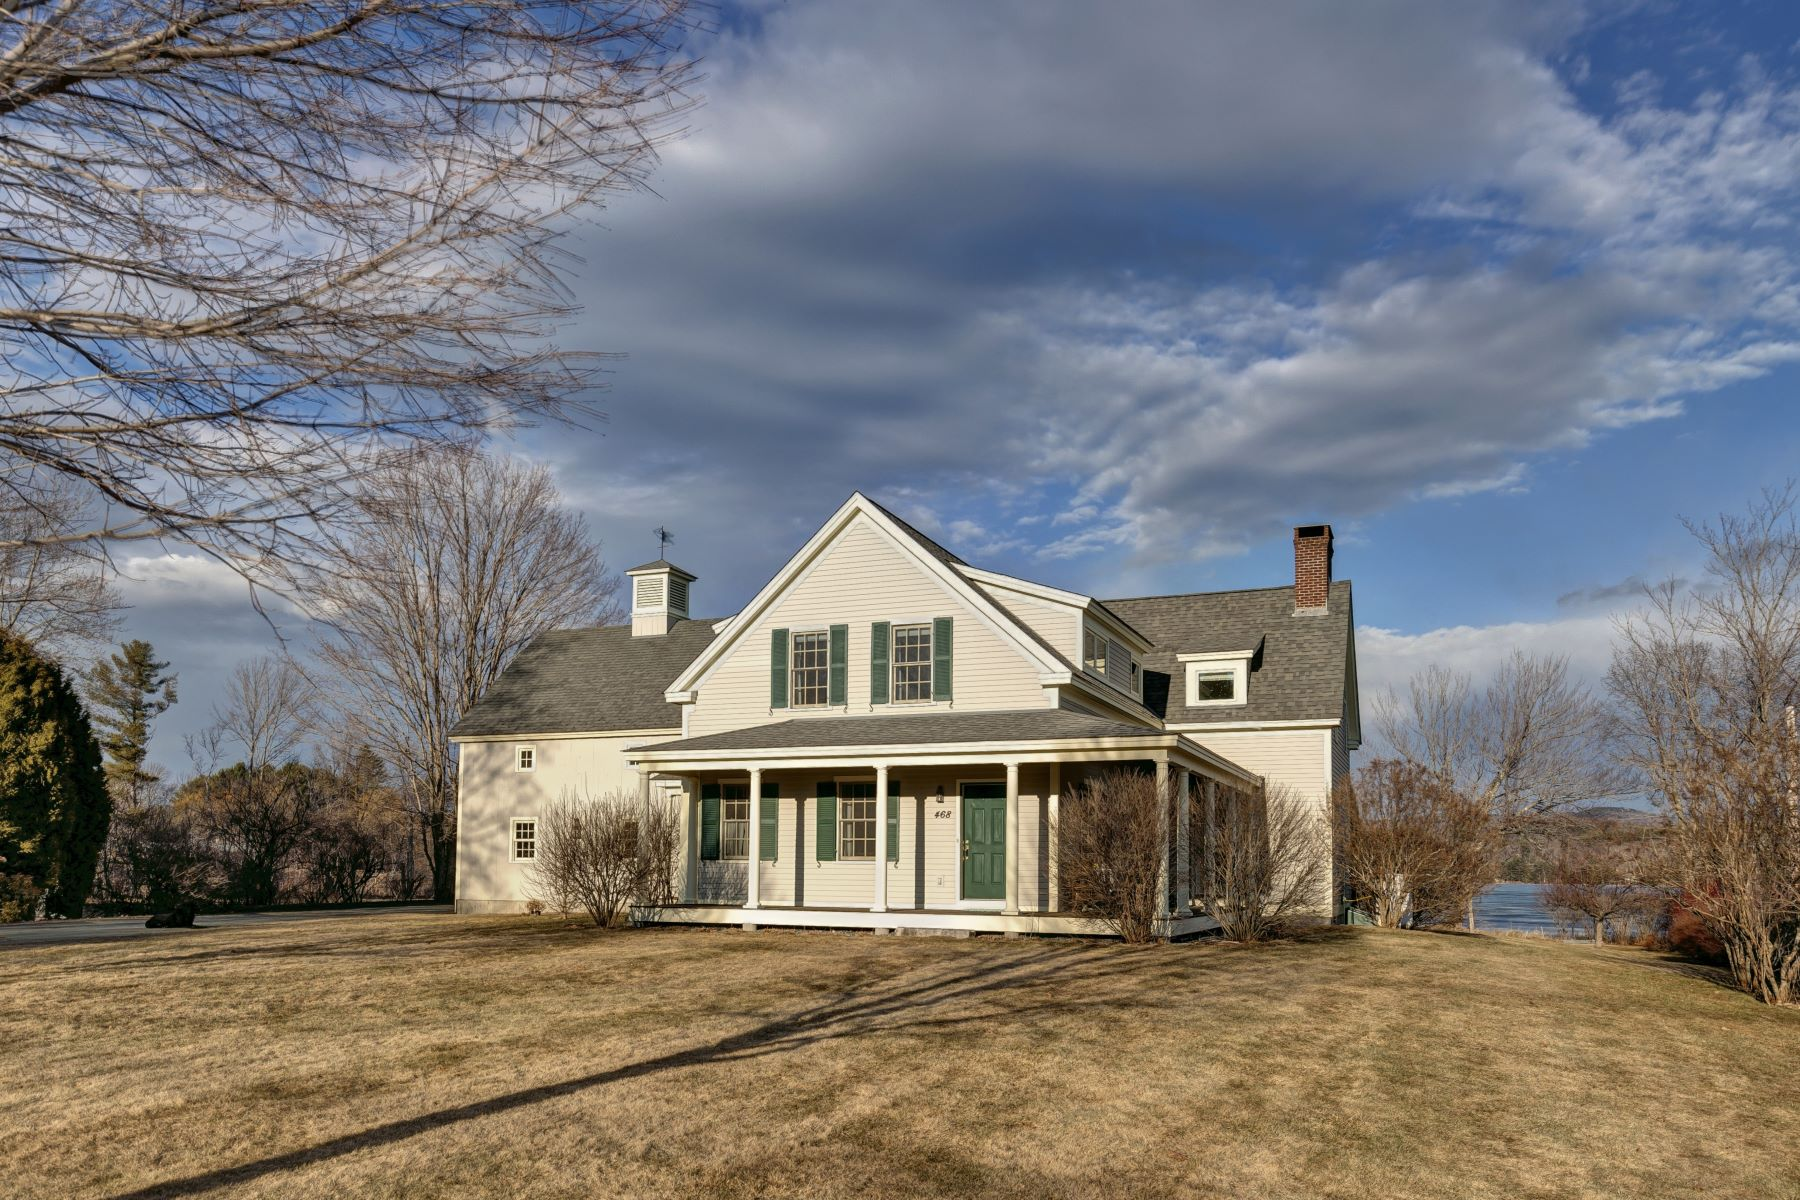 Single Family Home for Sale at 468 Canaan, Canaan Canaan, New Hampshire 03741 United States